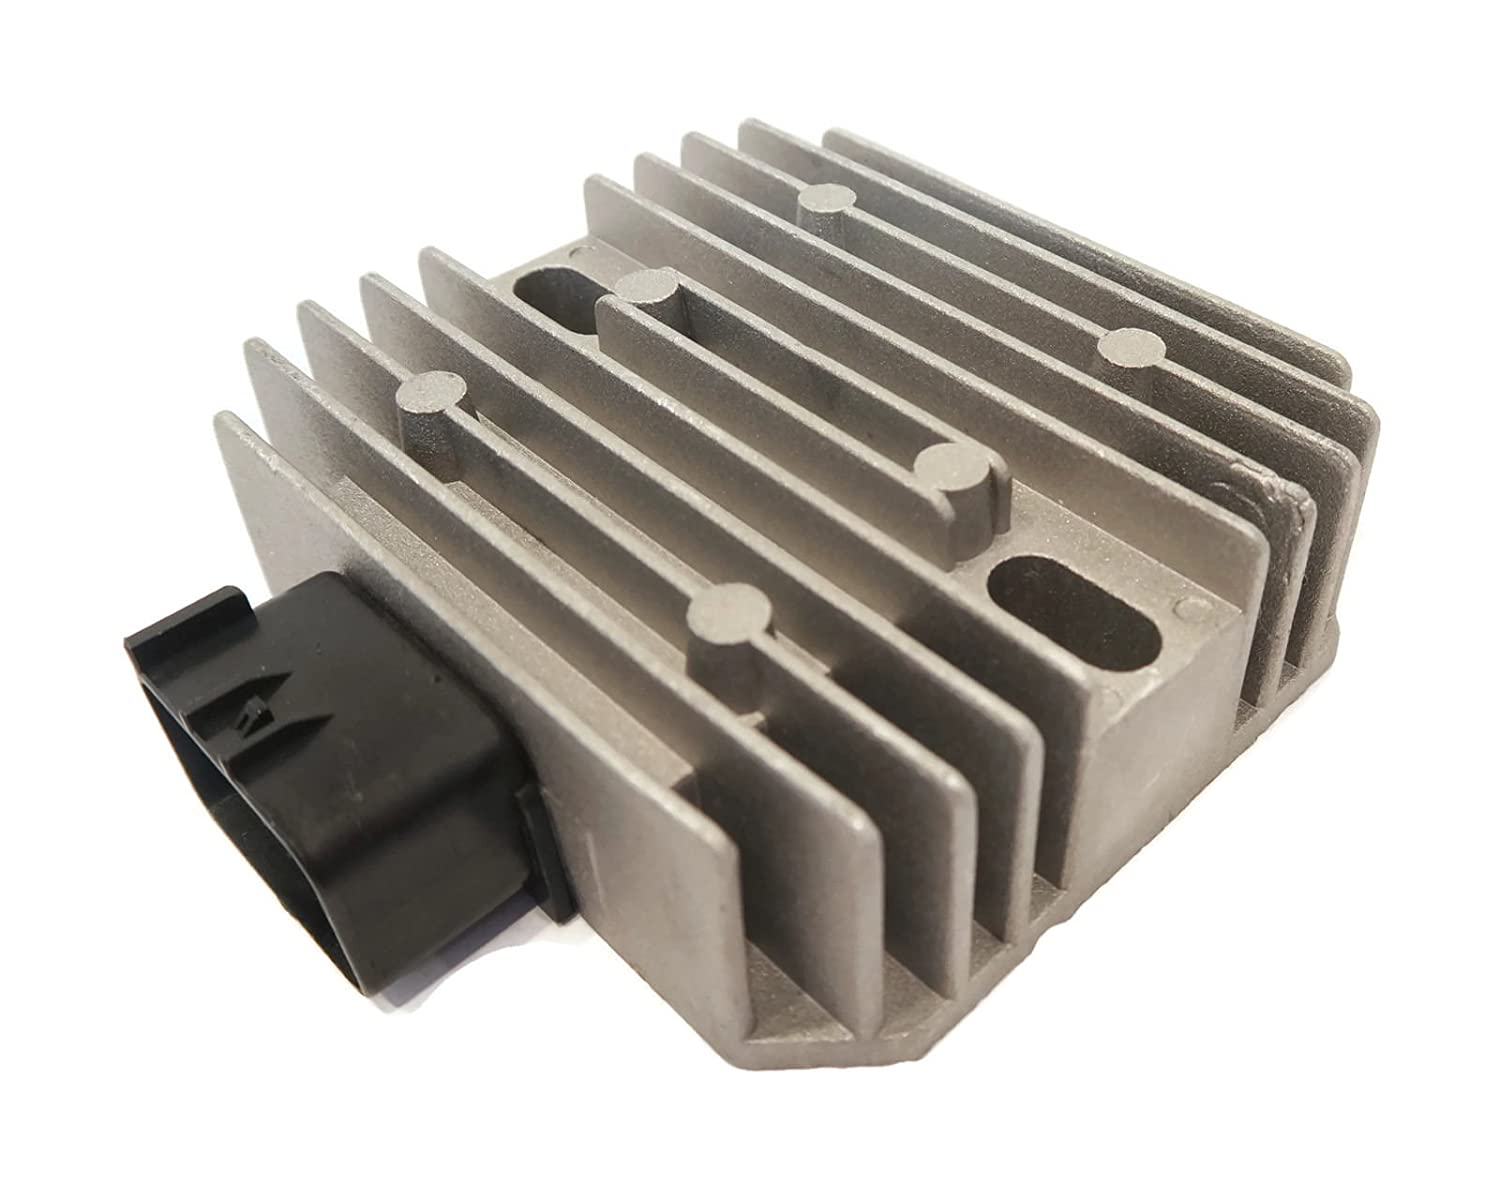 VOLTAGE REGULATOR RECTIFIER fits Yamaha 2008-2017 WR250R 2008-2011 WR250X Bikes by The ROP Shop